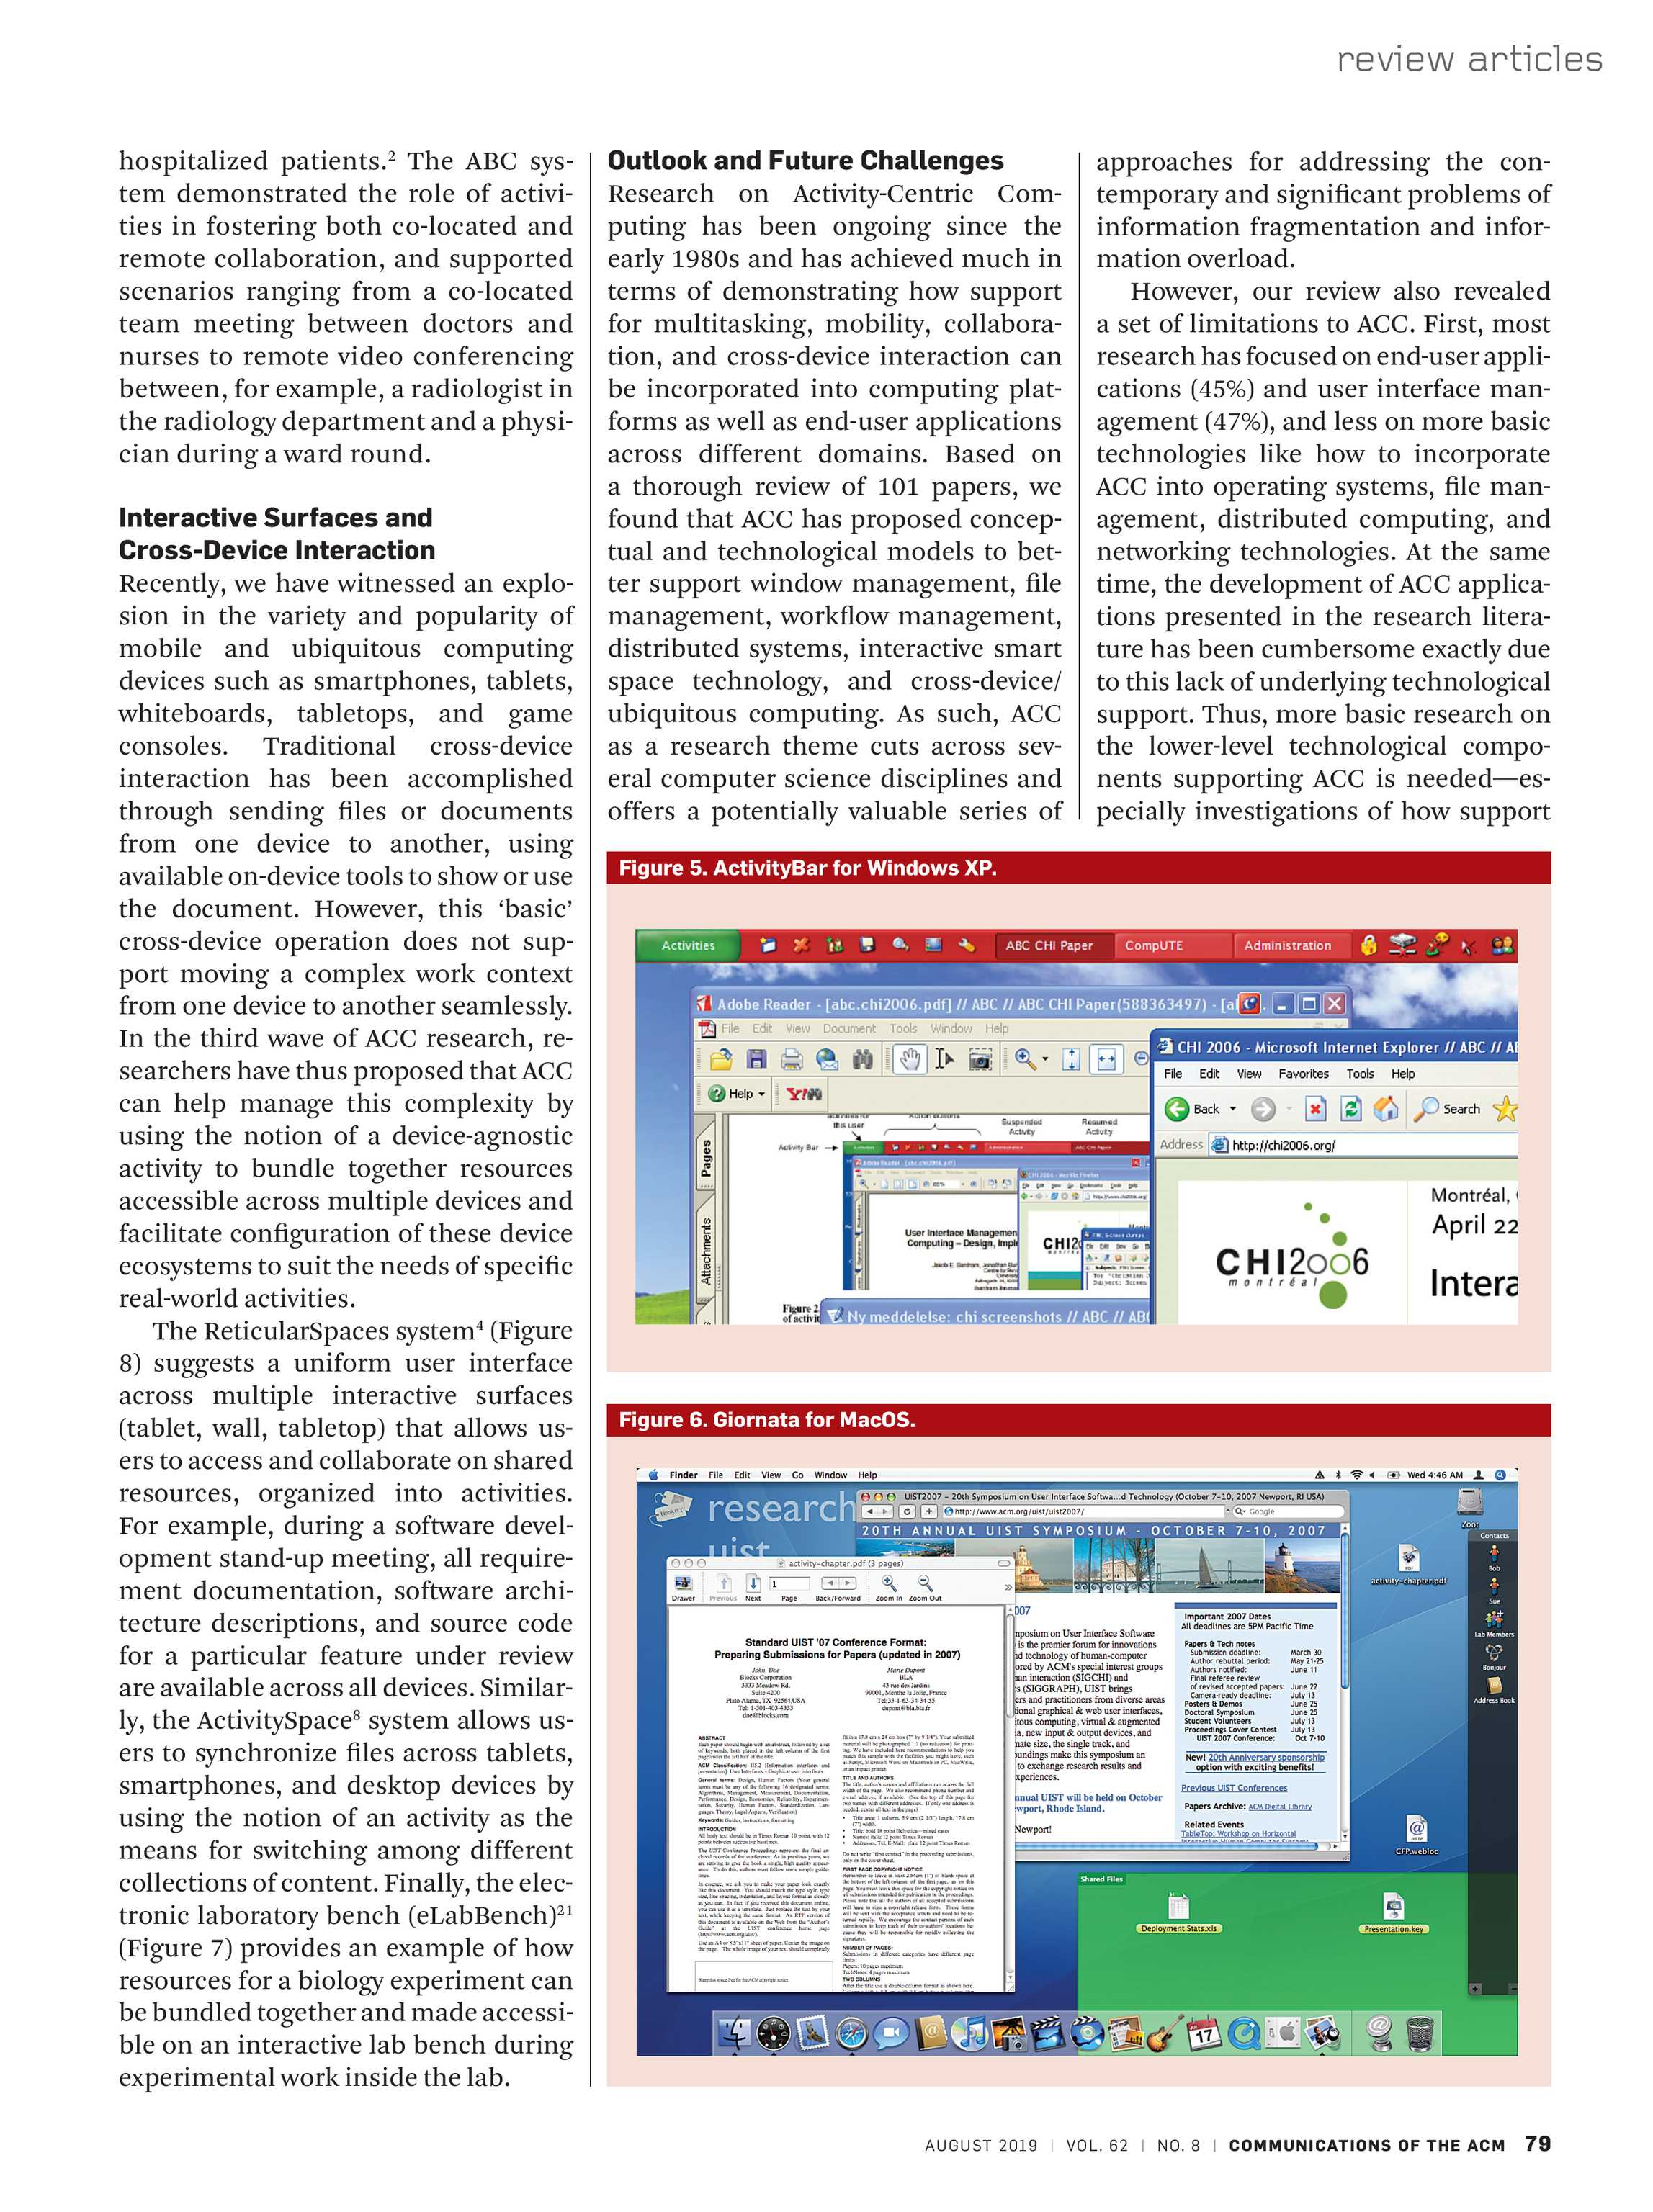 Communications of the ACM - August 2019 - page 79